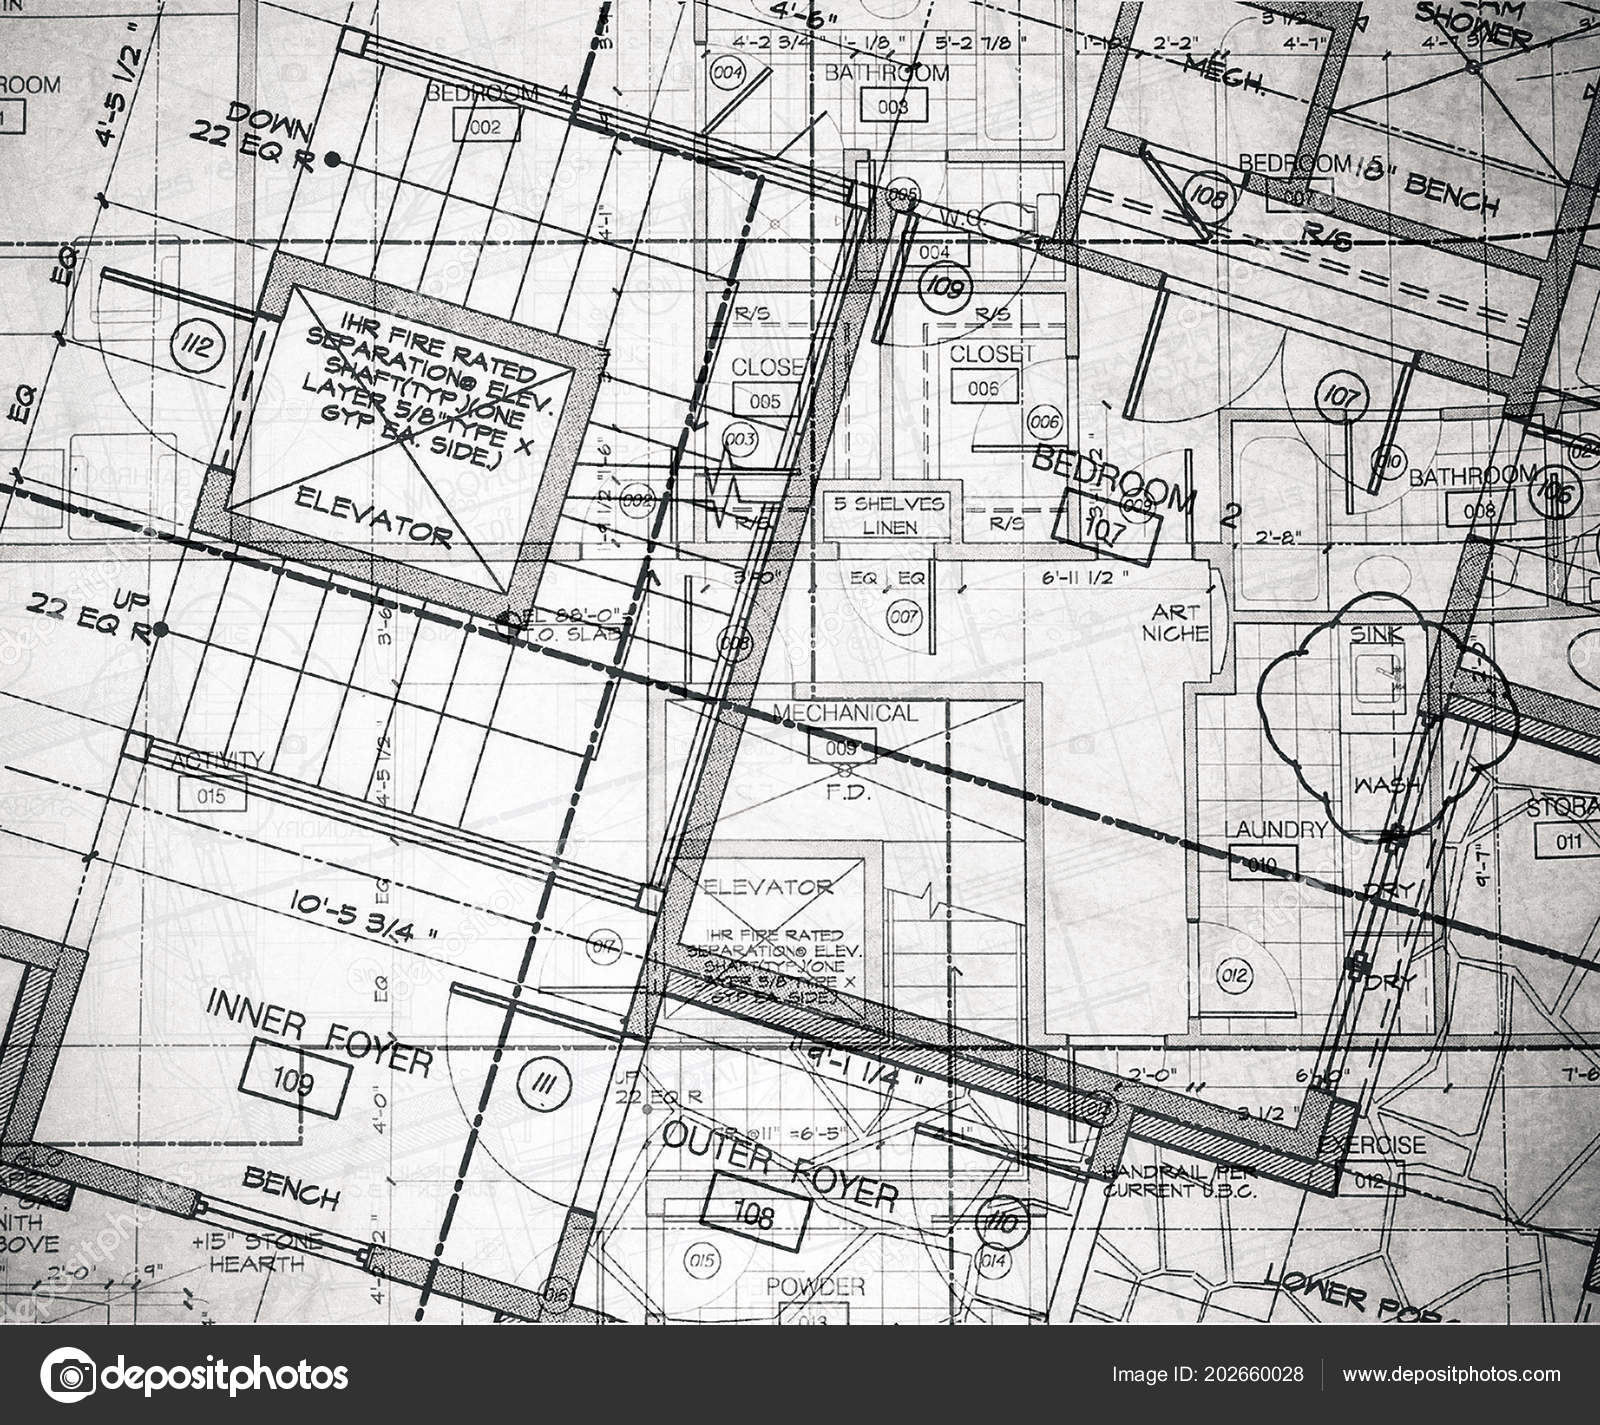 Groovy Abstract House Plans Layered Stock Photo C Davincidig Download Free Architecture Designs Embacsunscenecom